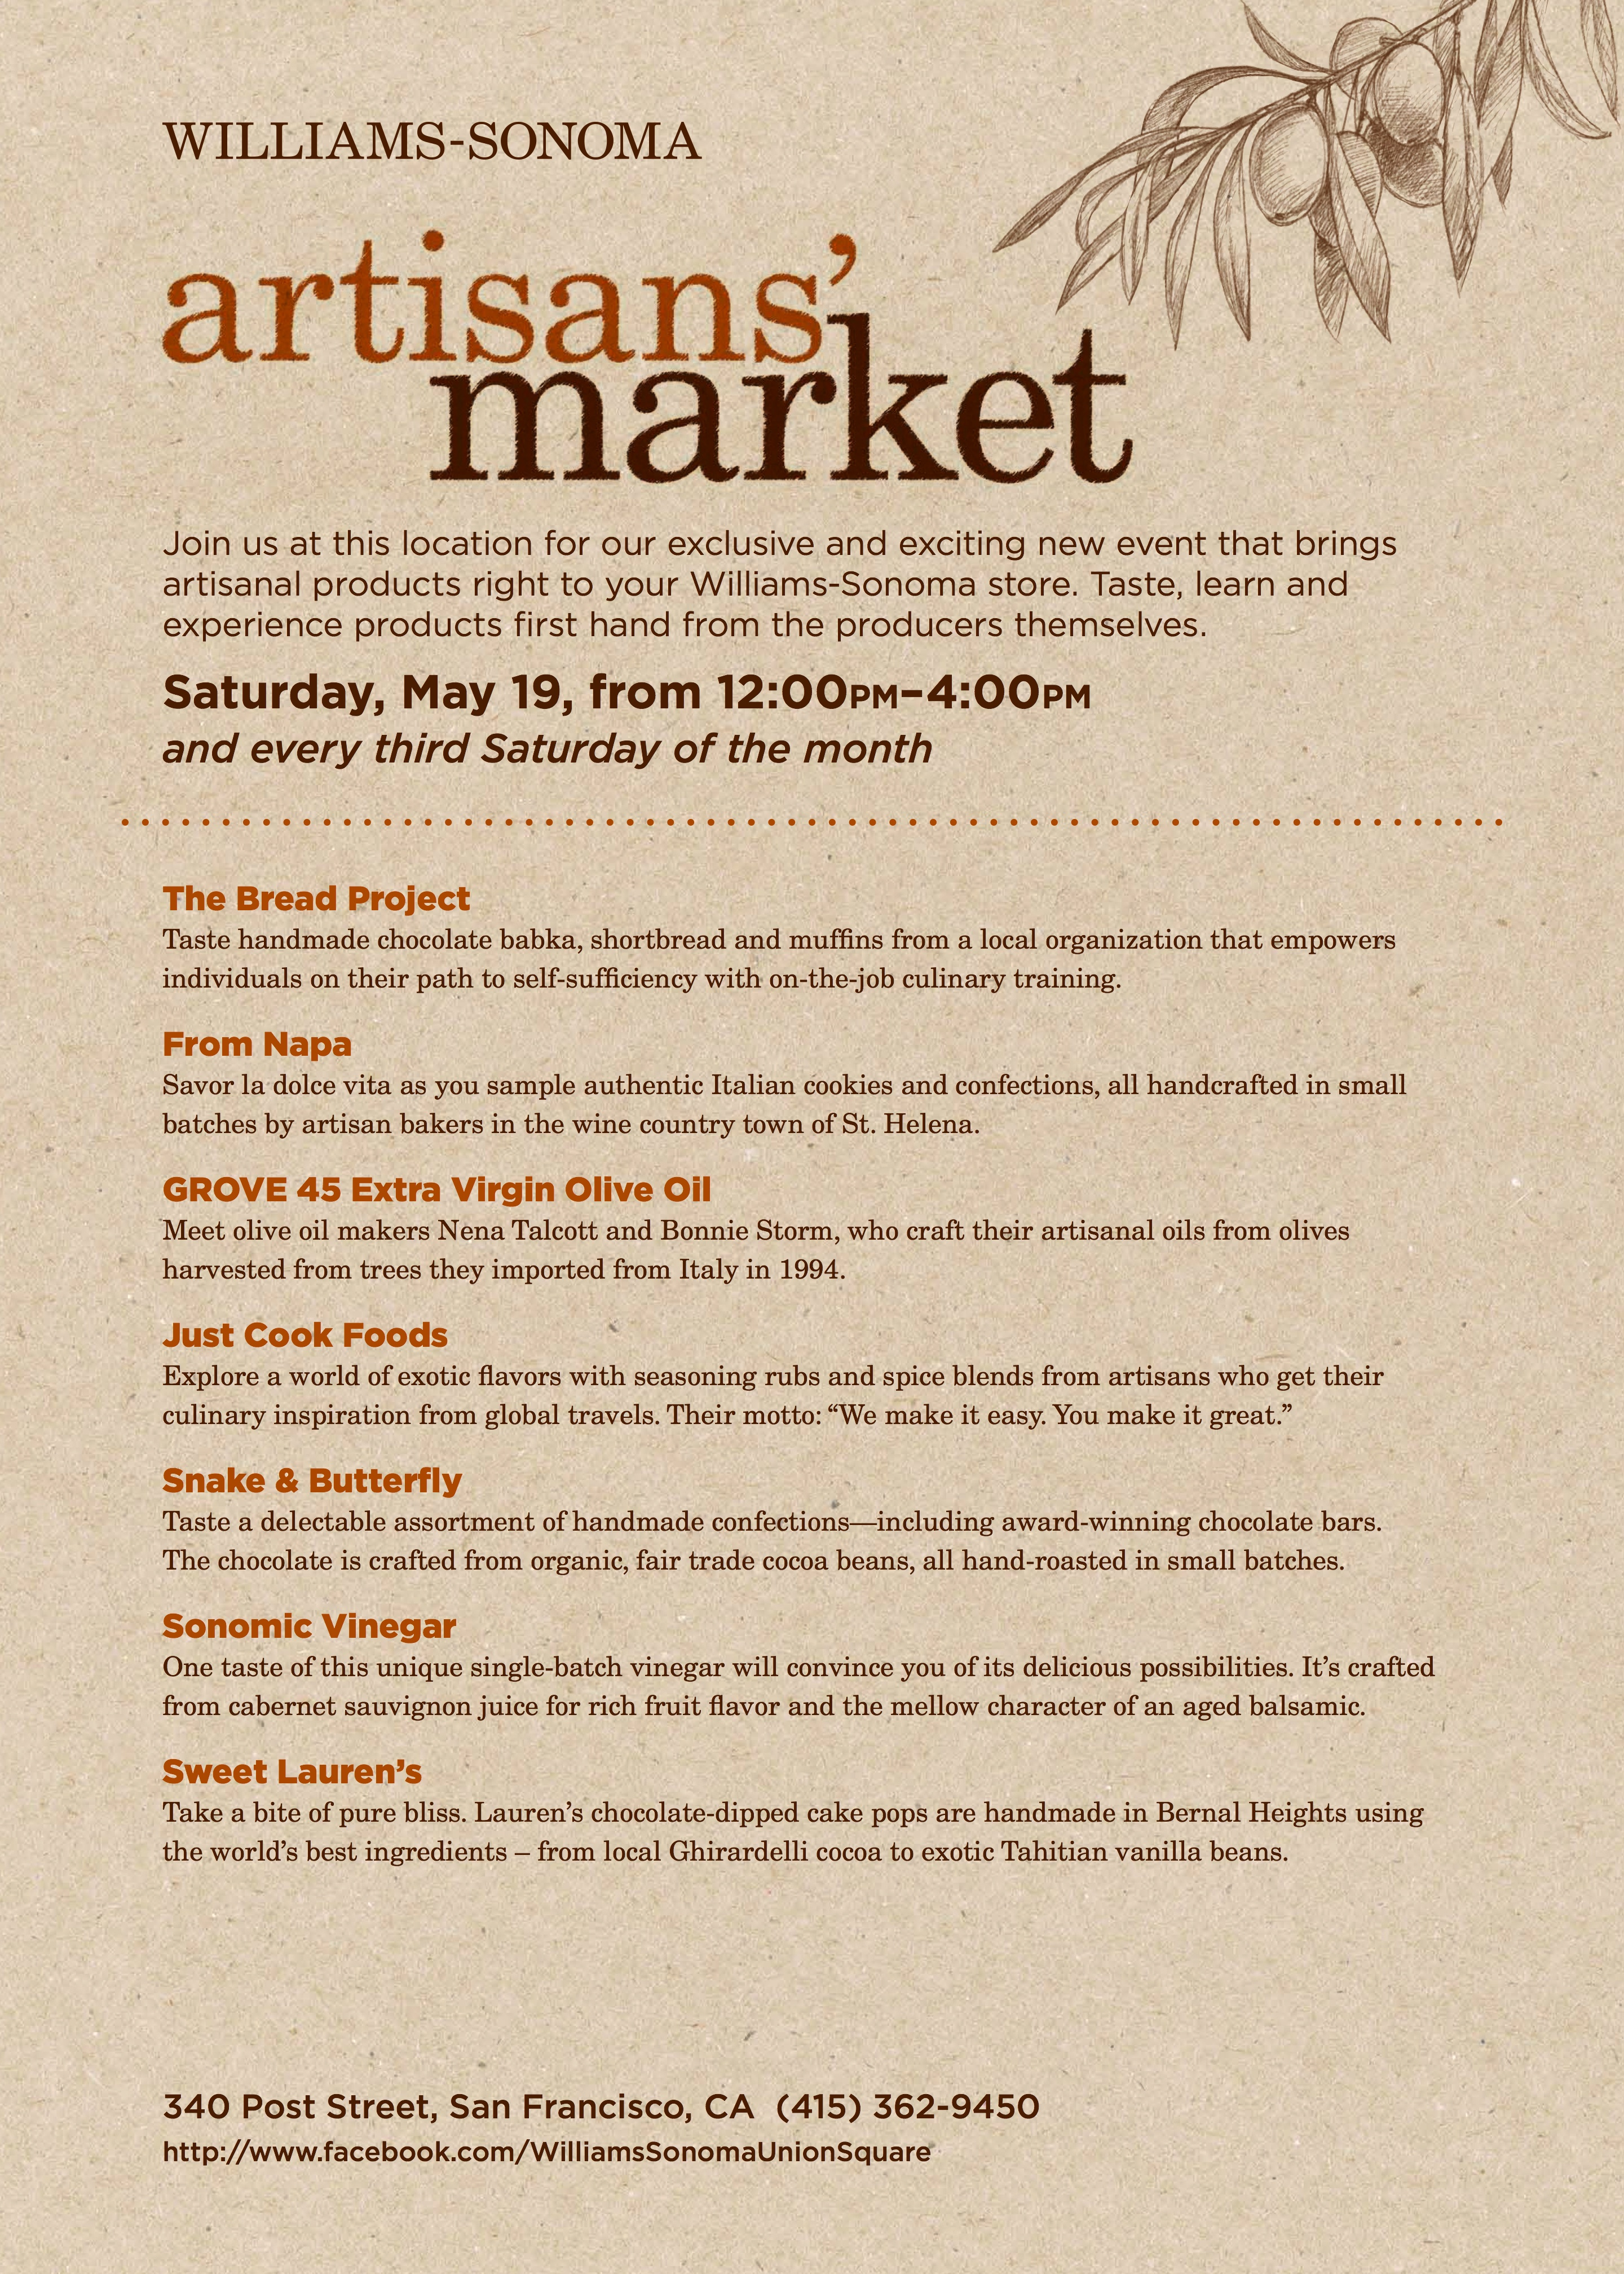 Artisan Line Up for May 19th 2012